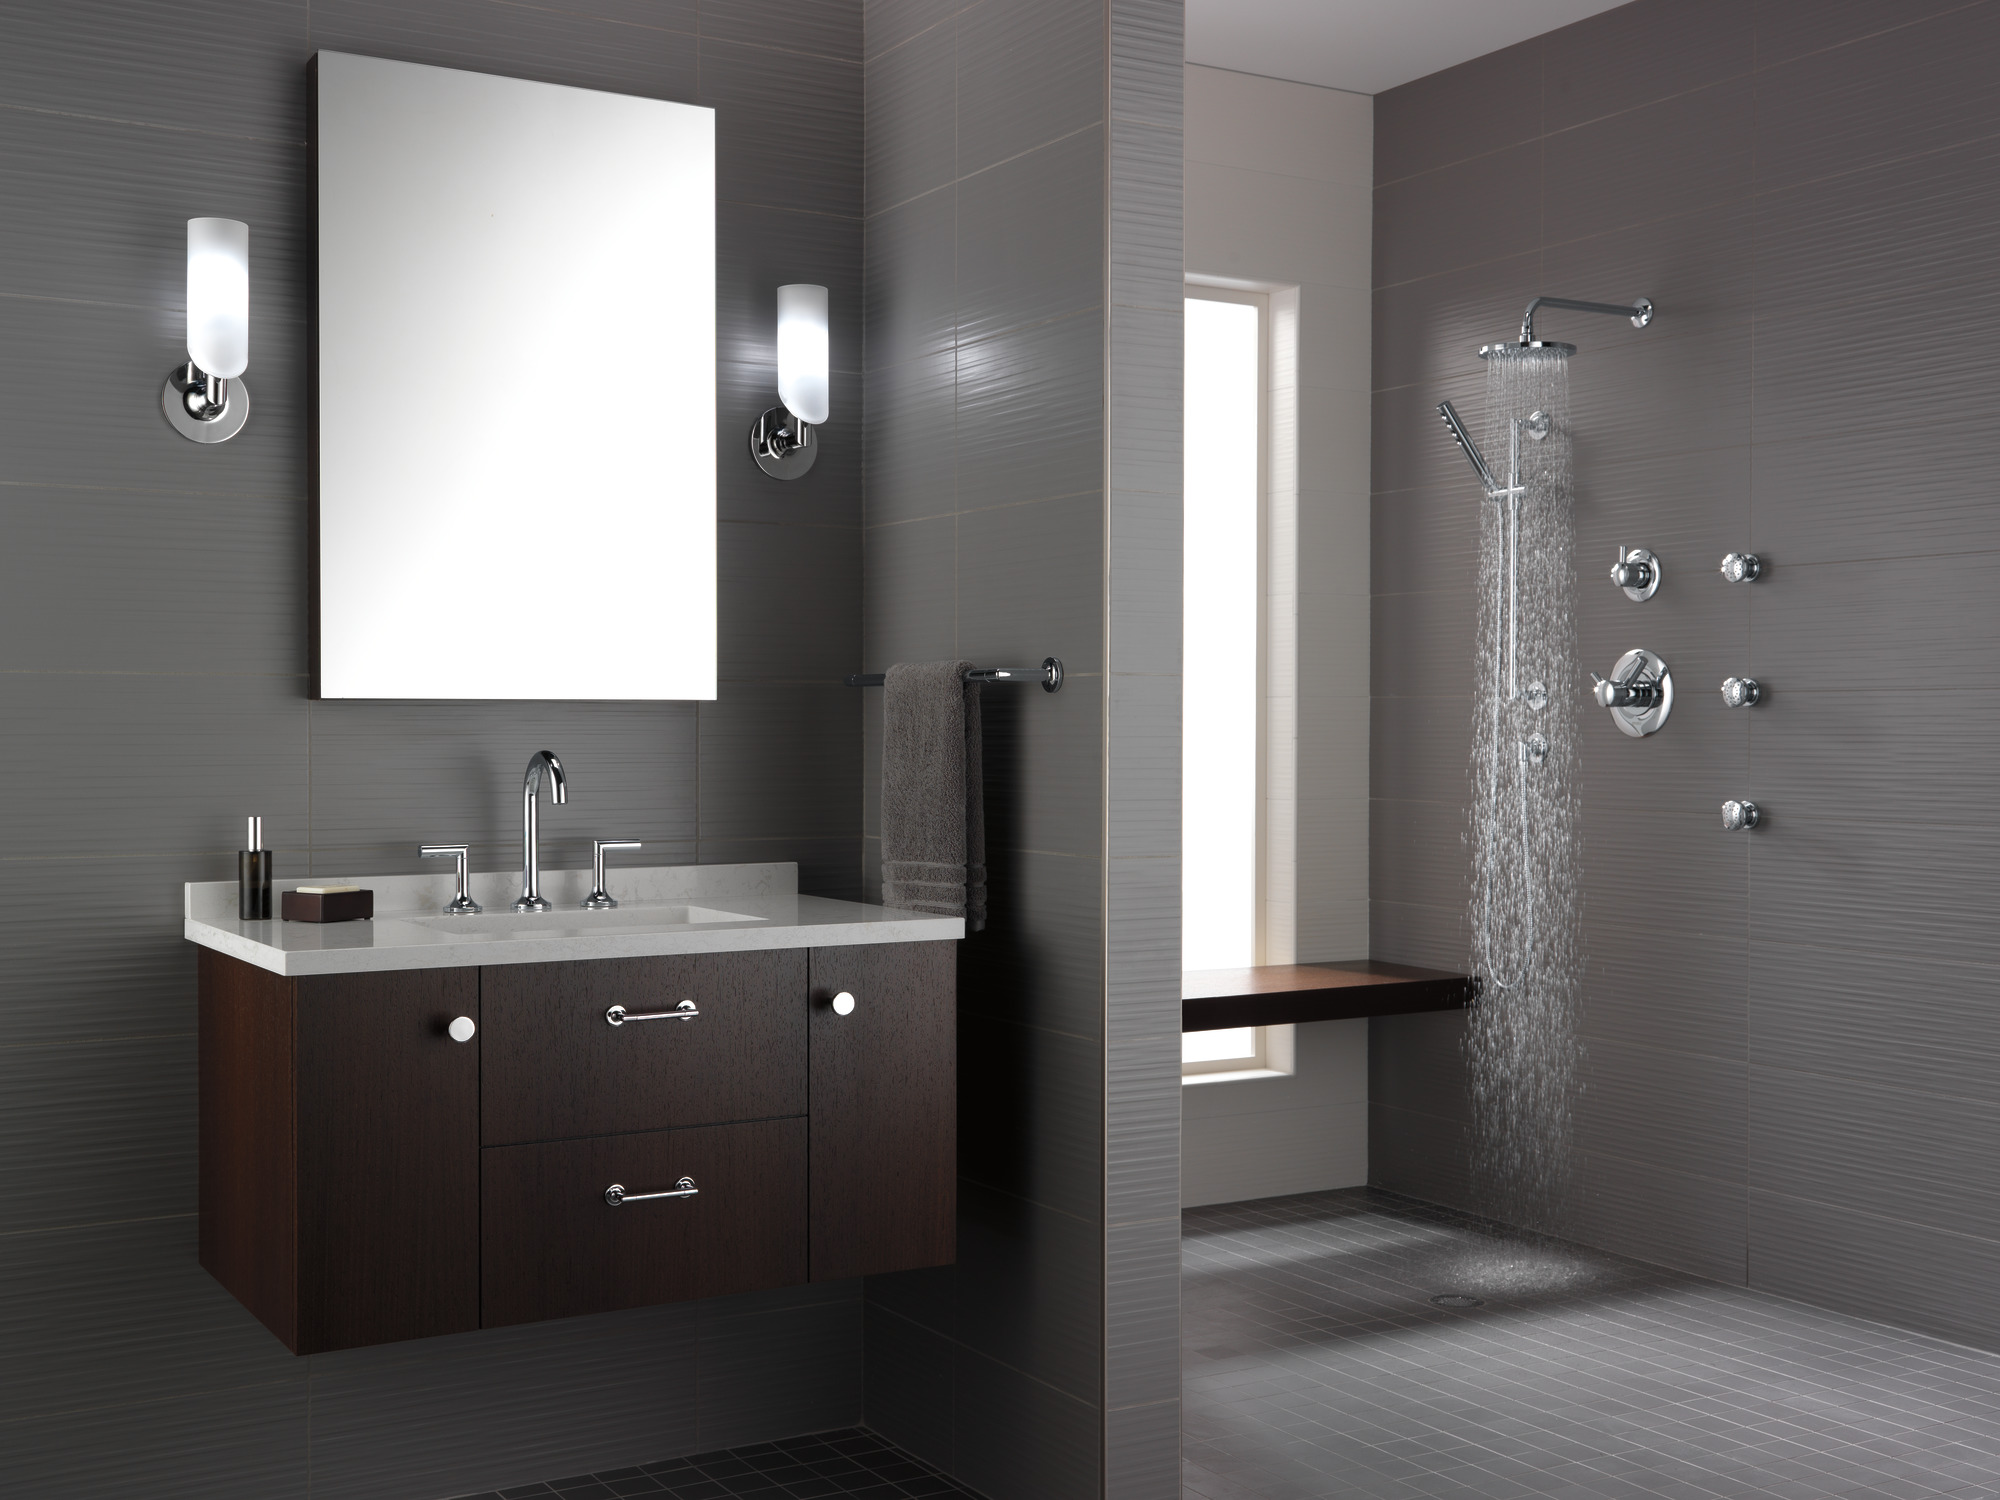 Bathrooms can lead design trends for the entire remodel for Bathroom remodeling leads